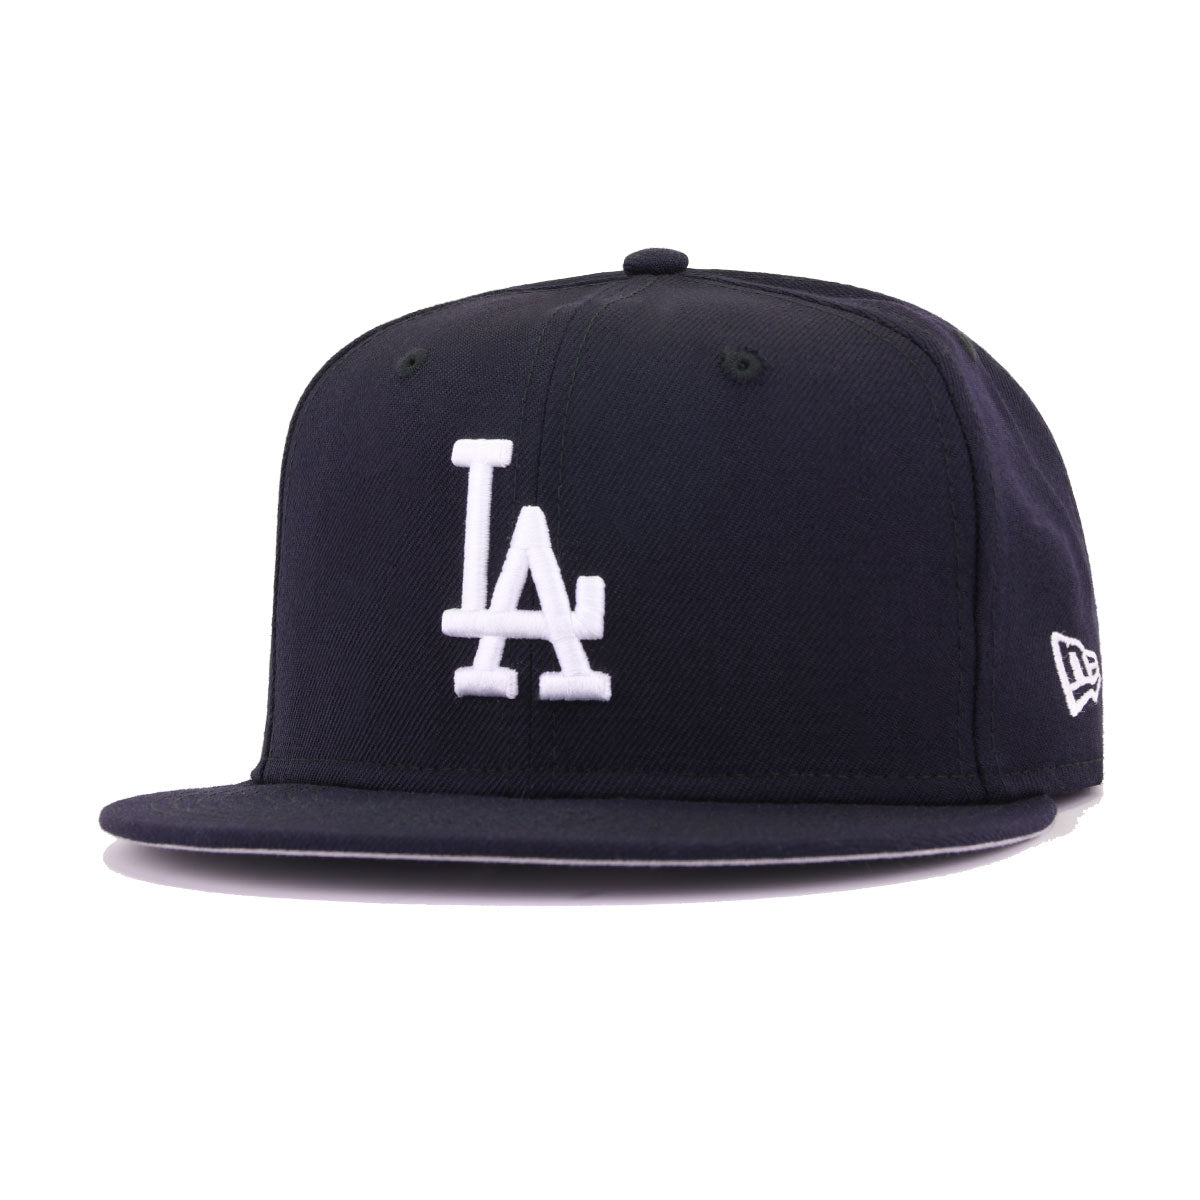 Los Angeles Dodgers Navy New Era 59Fifty Fitted